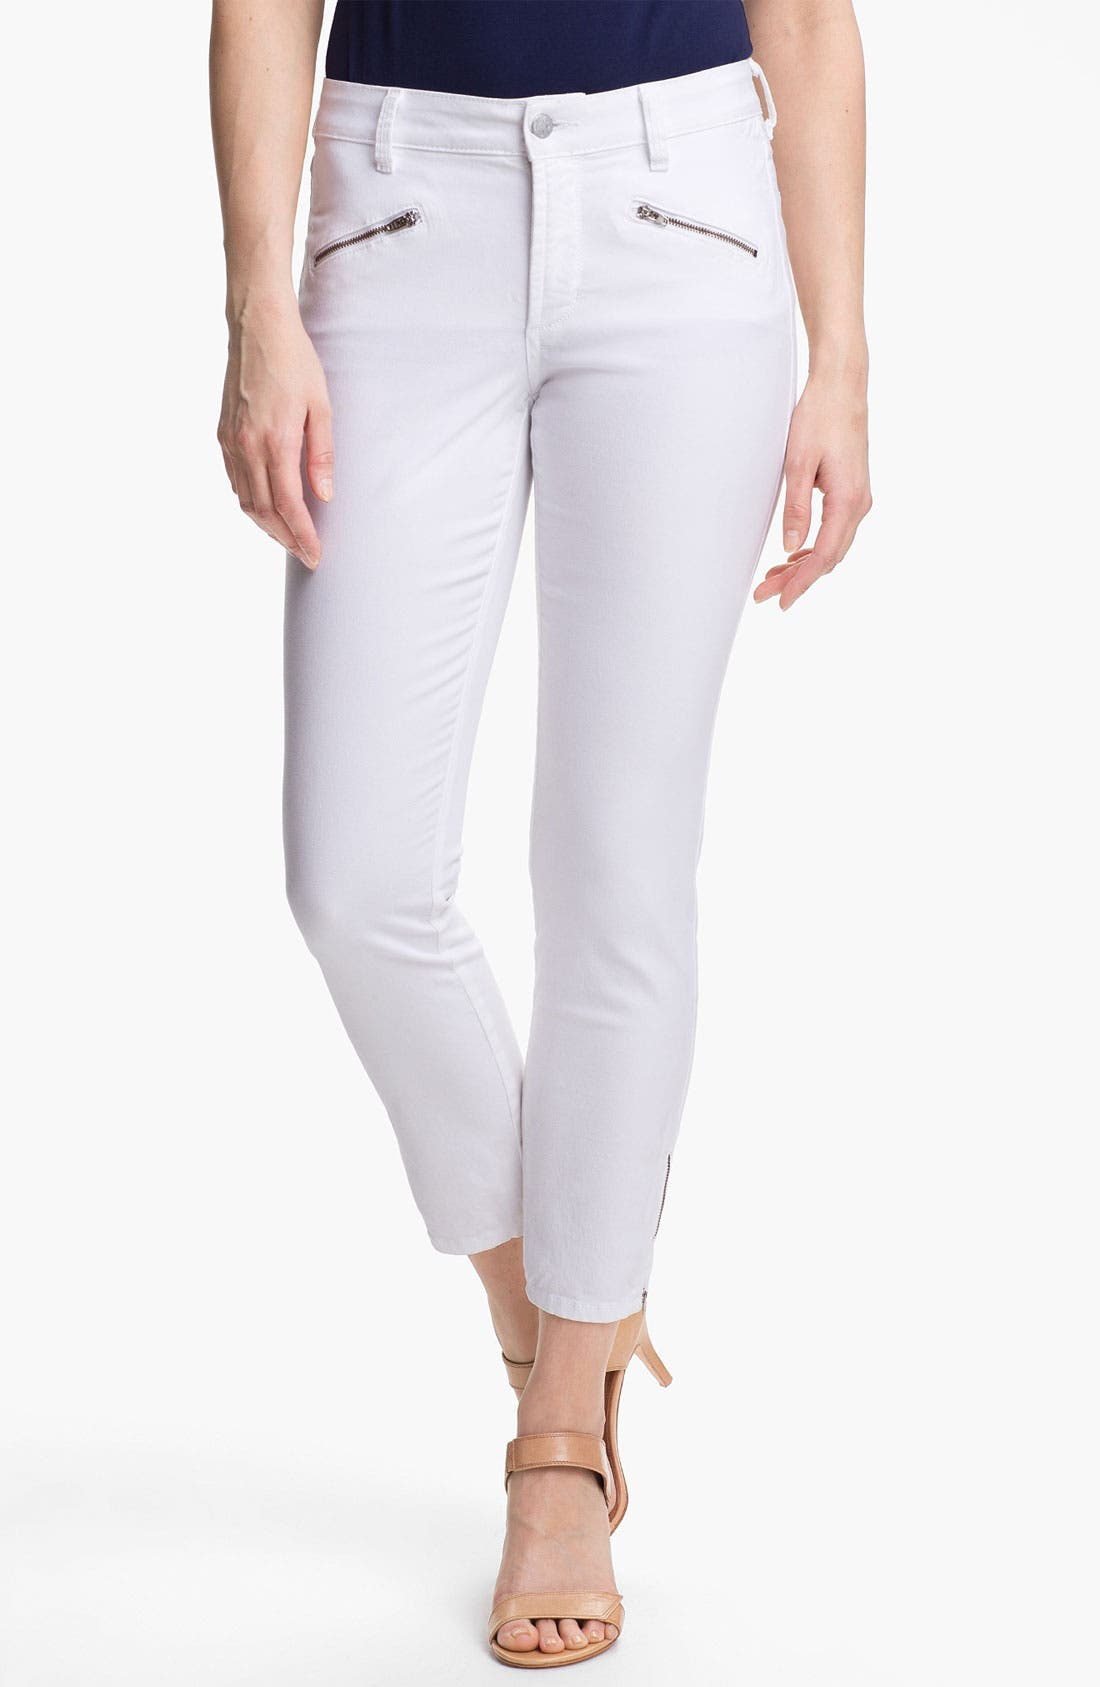 Main Image - NYDJ 'Angelina' Stretch Denim Leggings (Regular & Petite)